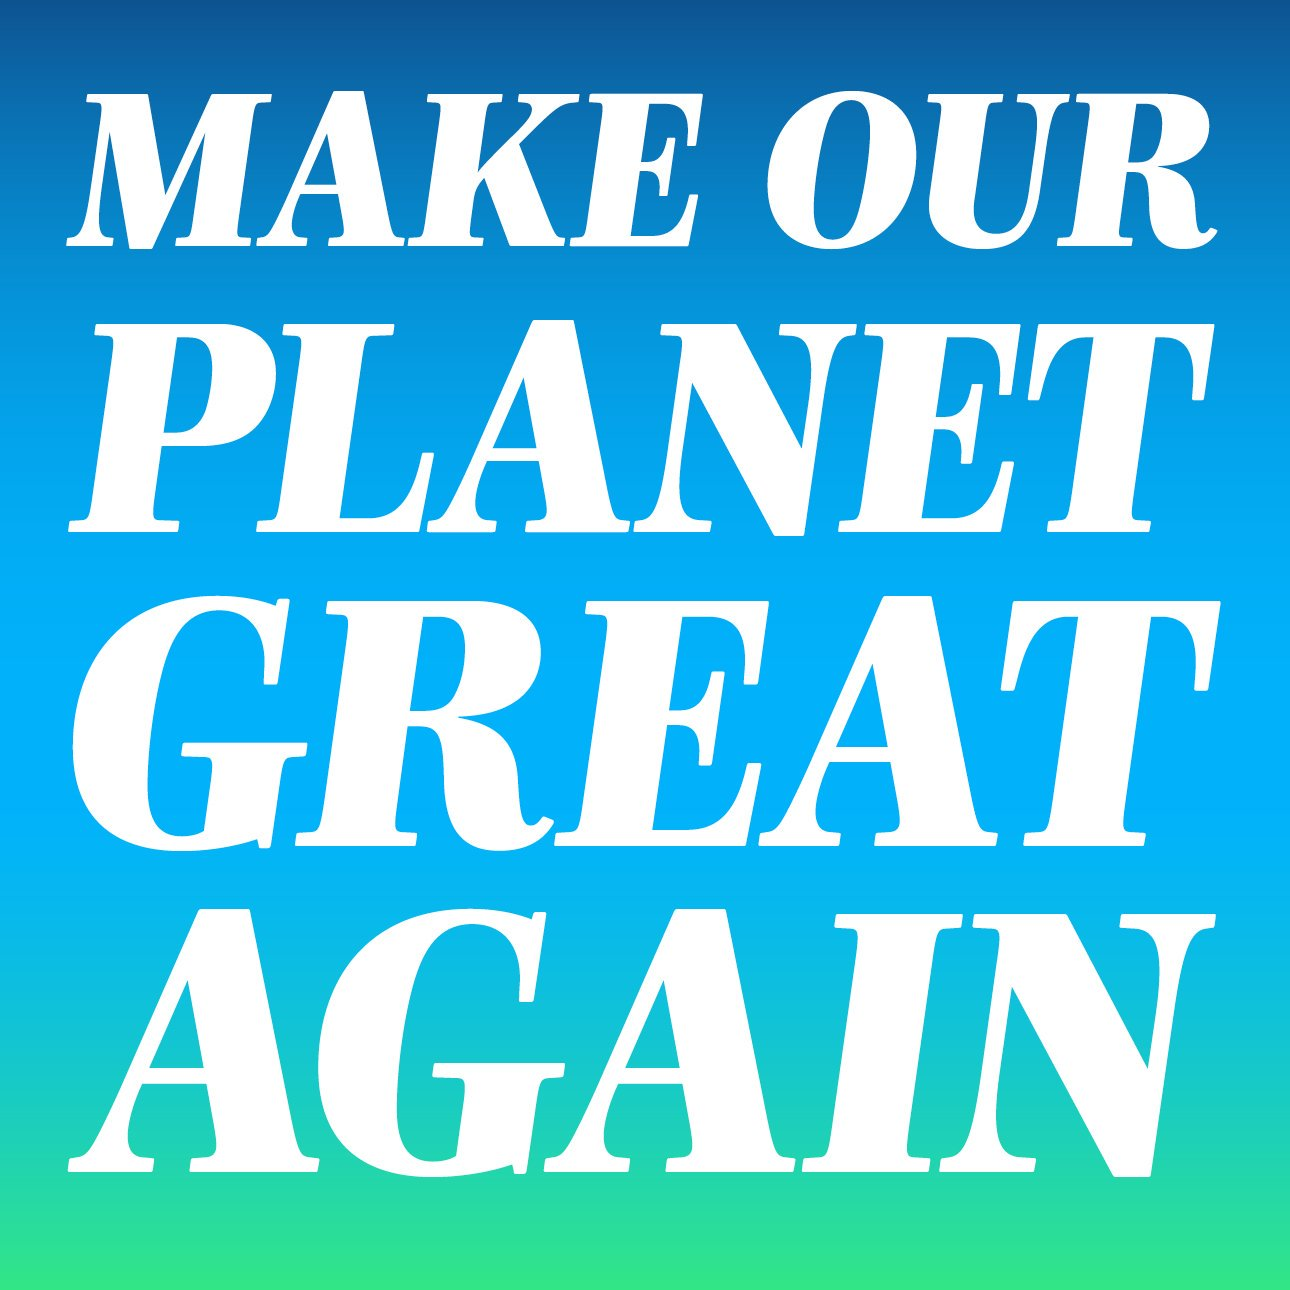 Make_Our_Planet_Great_Again.jpg